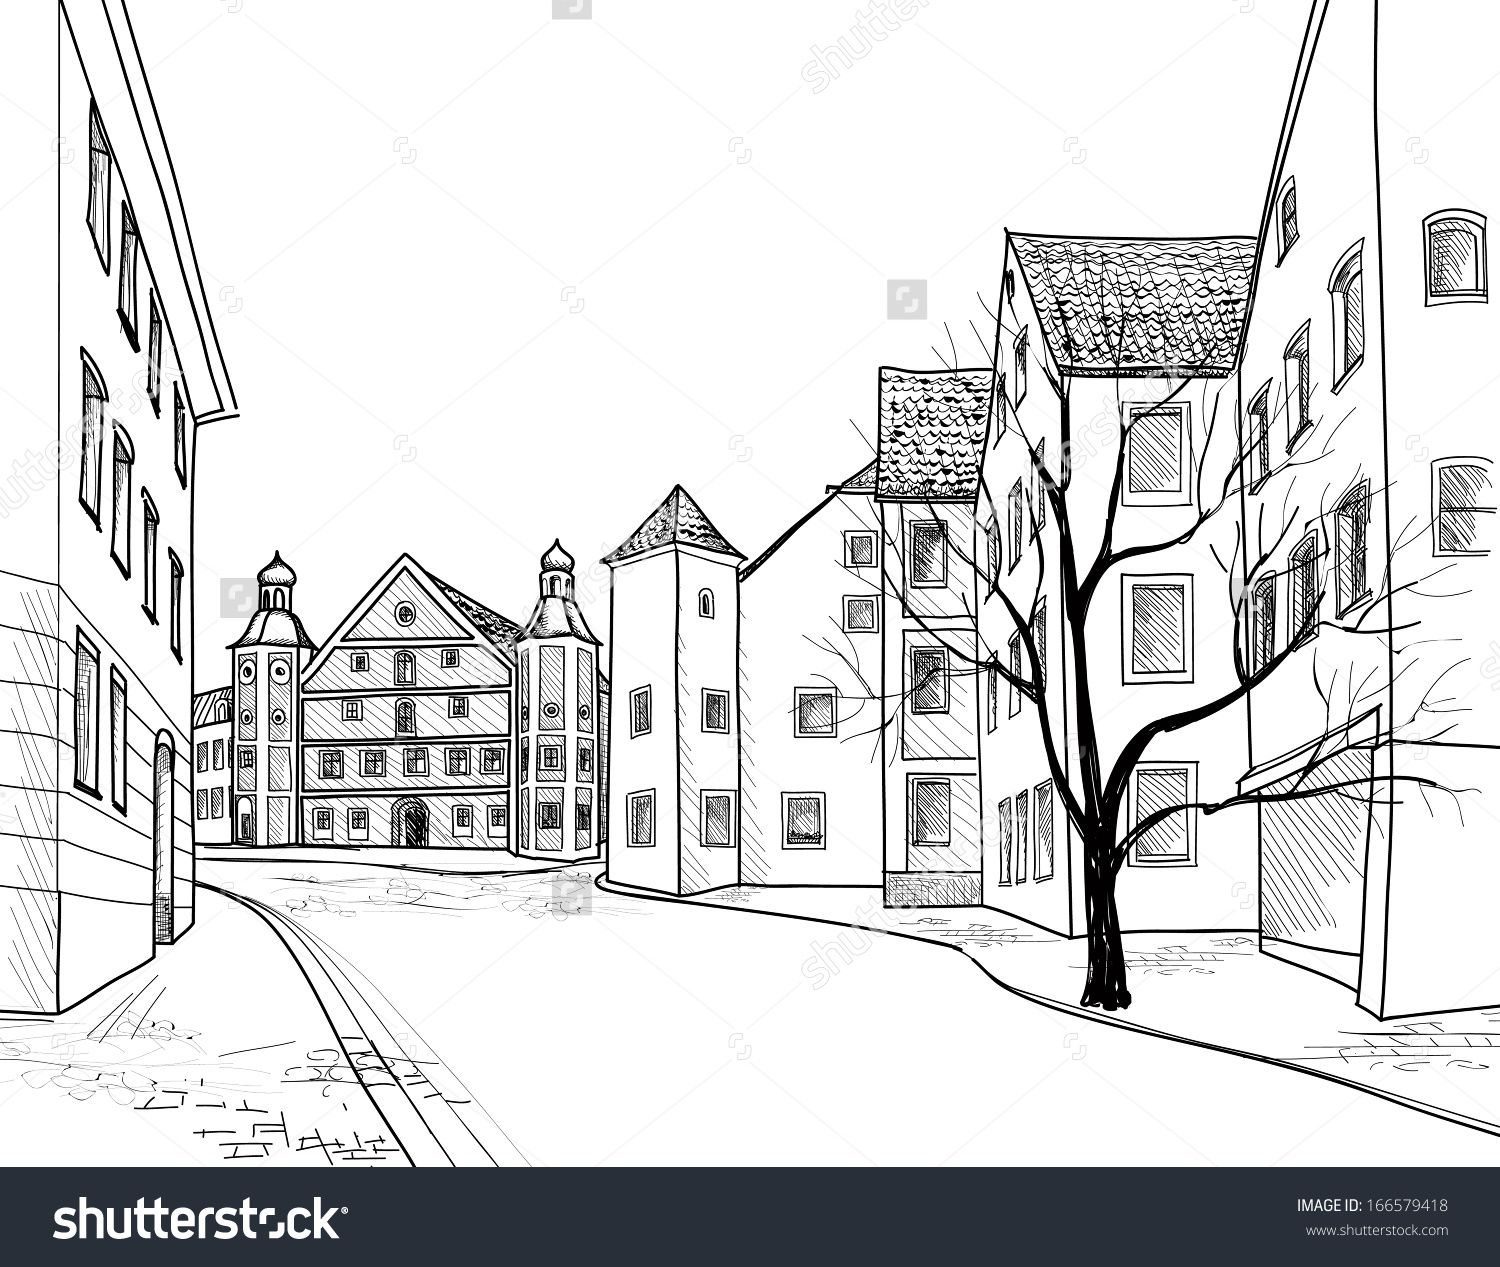 Pedestrian Street In The Old European City Burglengenfeld Bavaria Germany Hand Drawing Background With Church